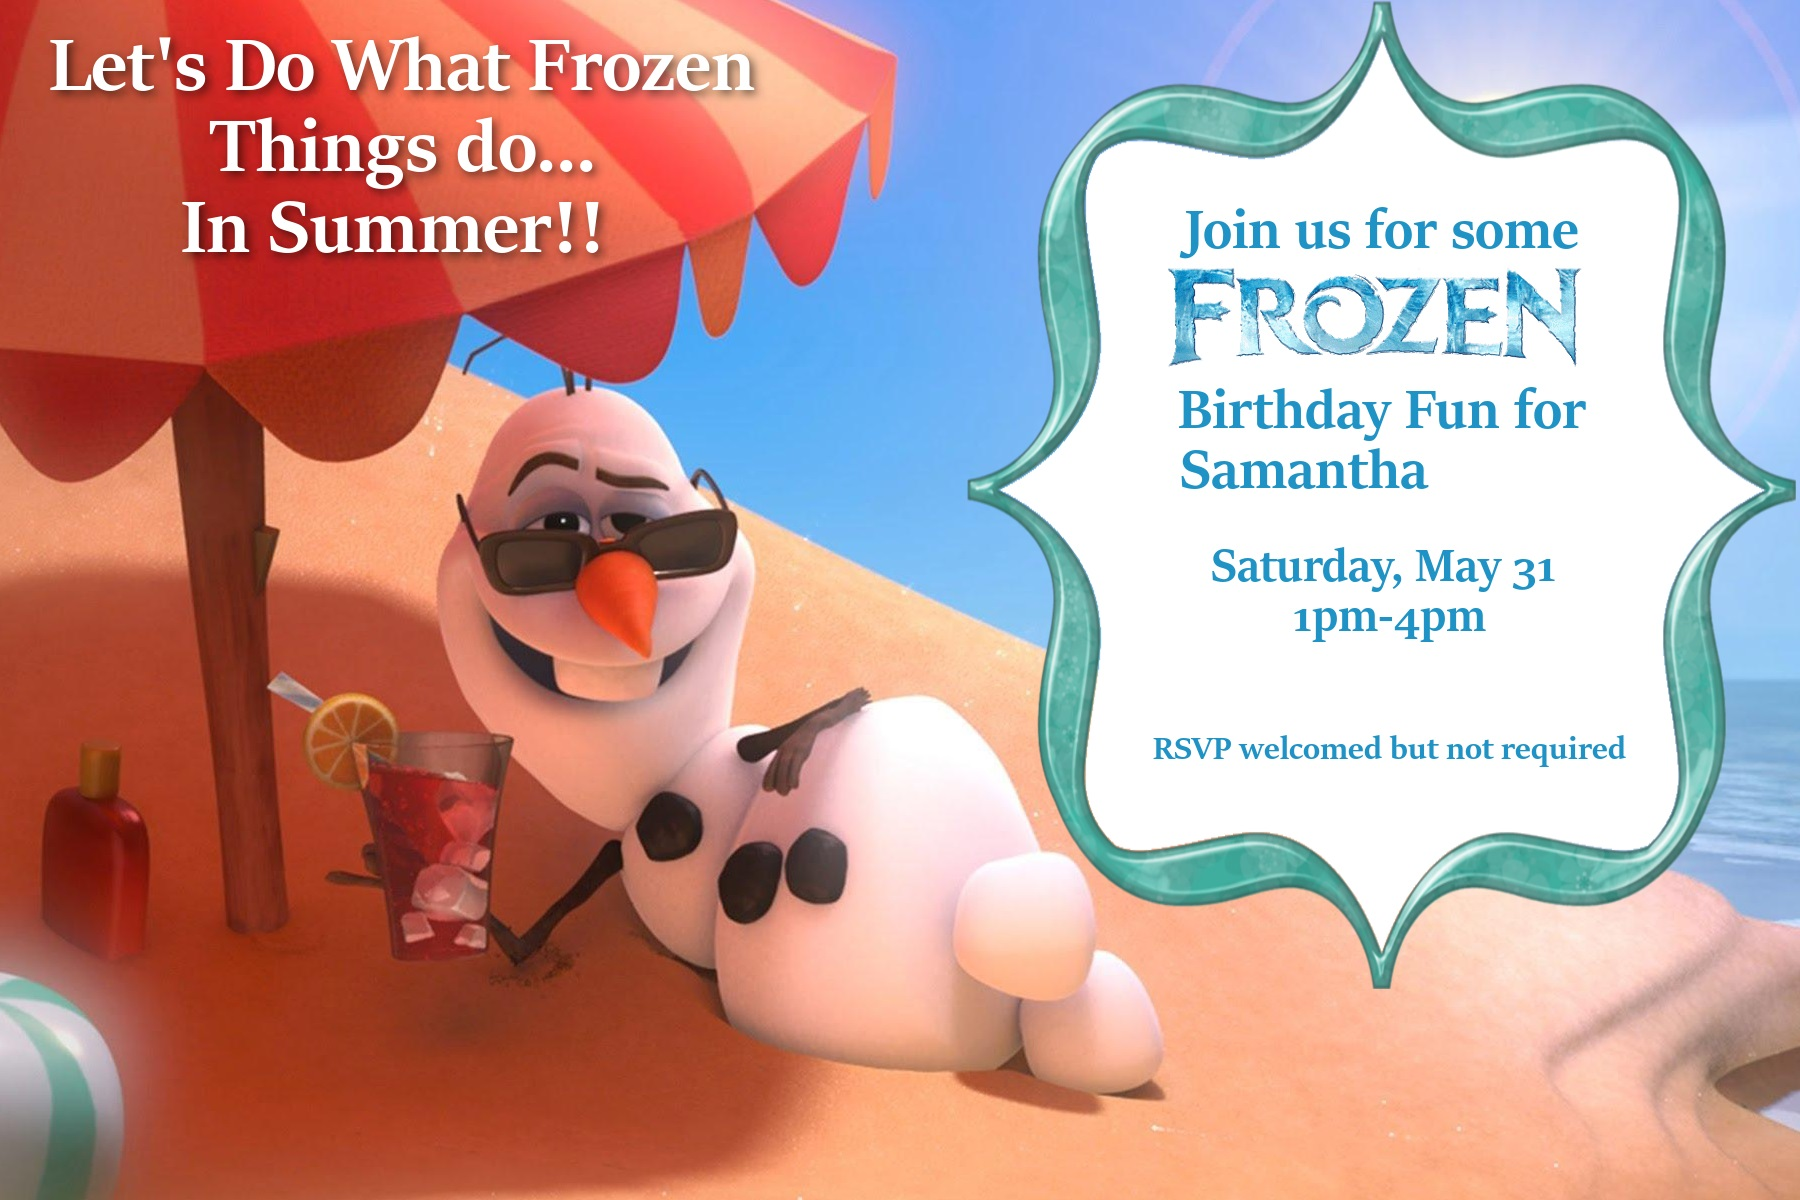 Frozen Birthday Party for Under $100